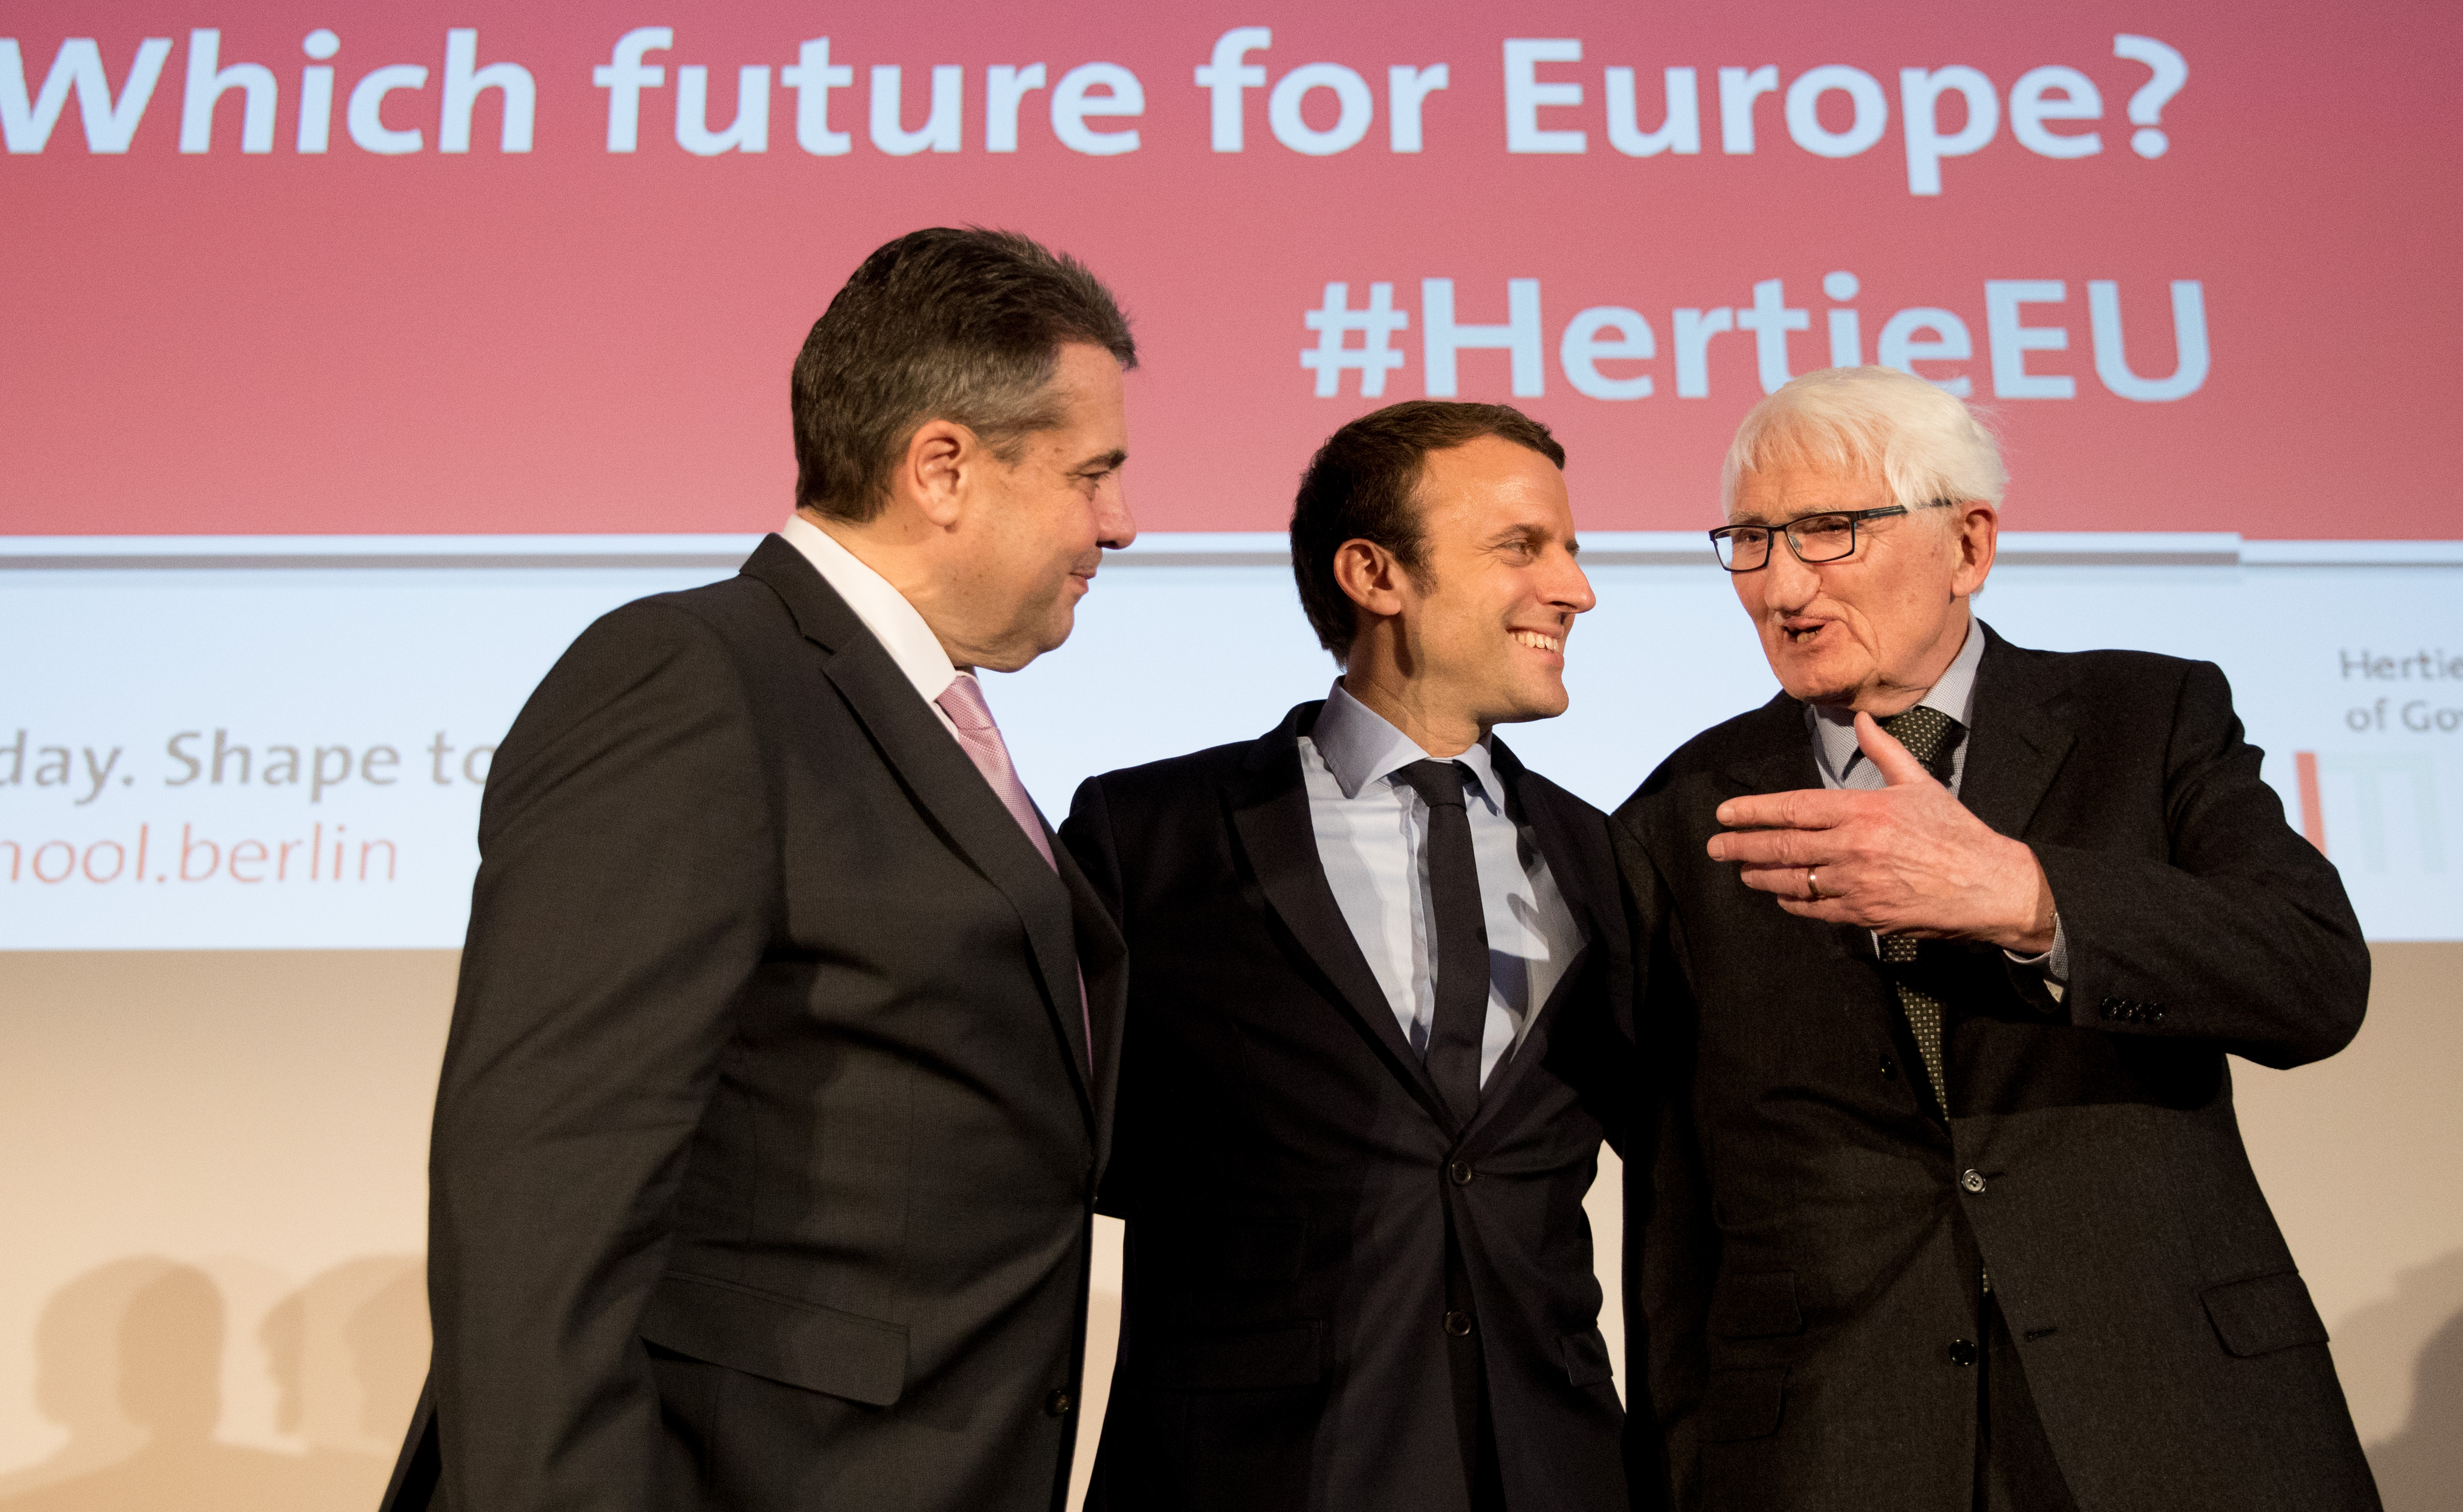 Emmanuel Macron, then a candidate for French president, and German Foreign Minister Sigmar Gabriel talk with Habermas at the Hertie School of Governance in Berlin on March 16, 2017.